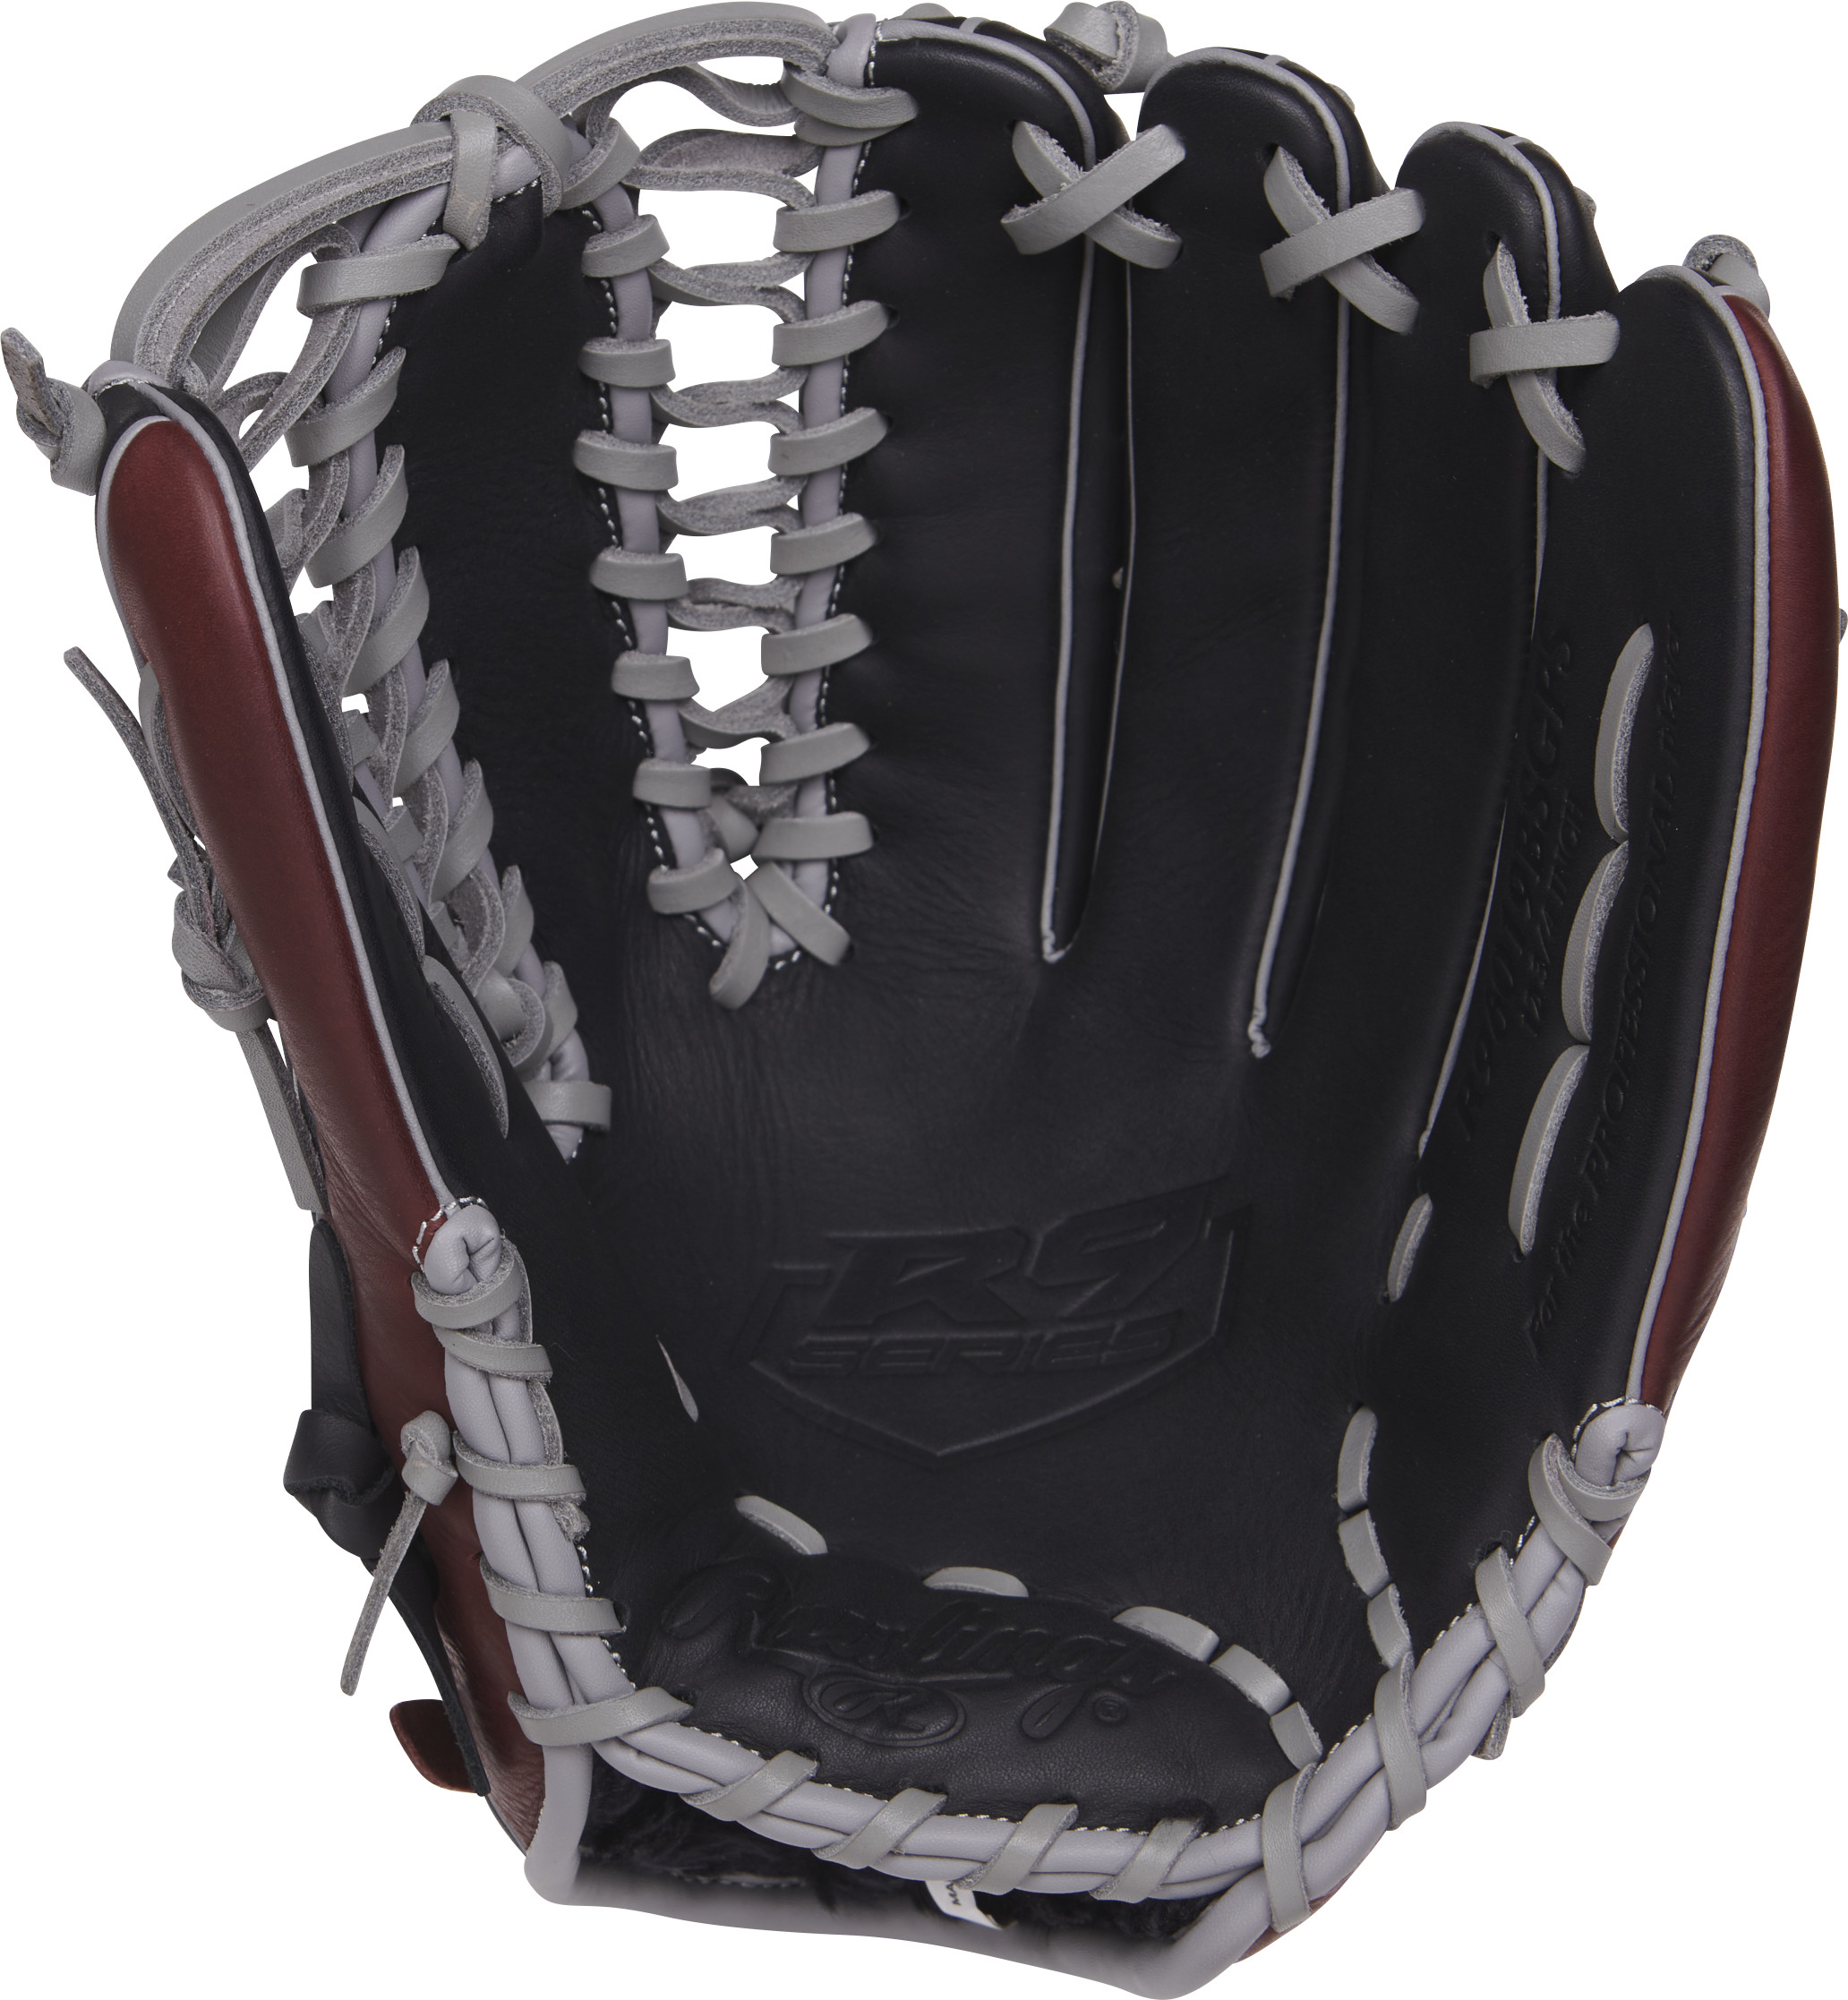 http://www.bestbatdeals.com/images/gloves/rawlings/R96019BSGFS-1.jpg